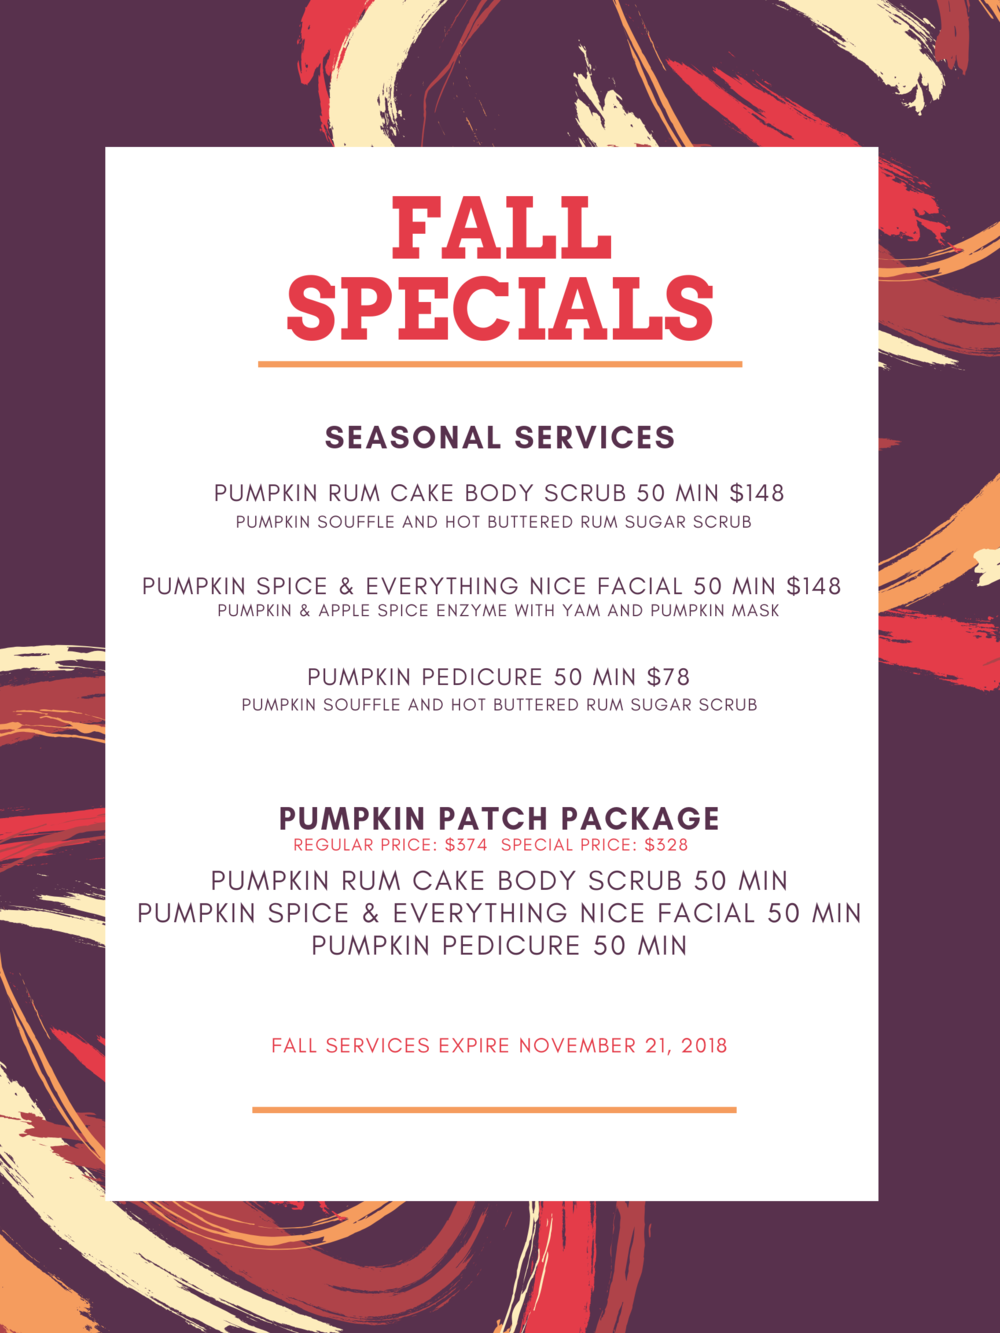 Fall Specials Poster (3).png